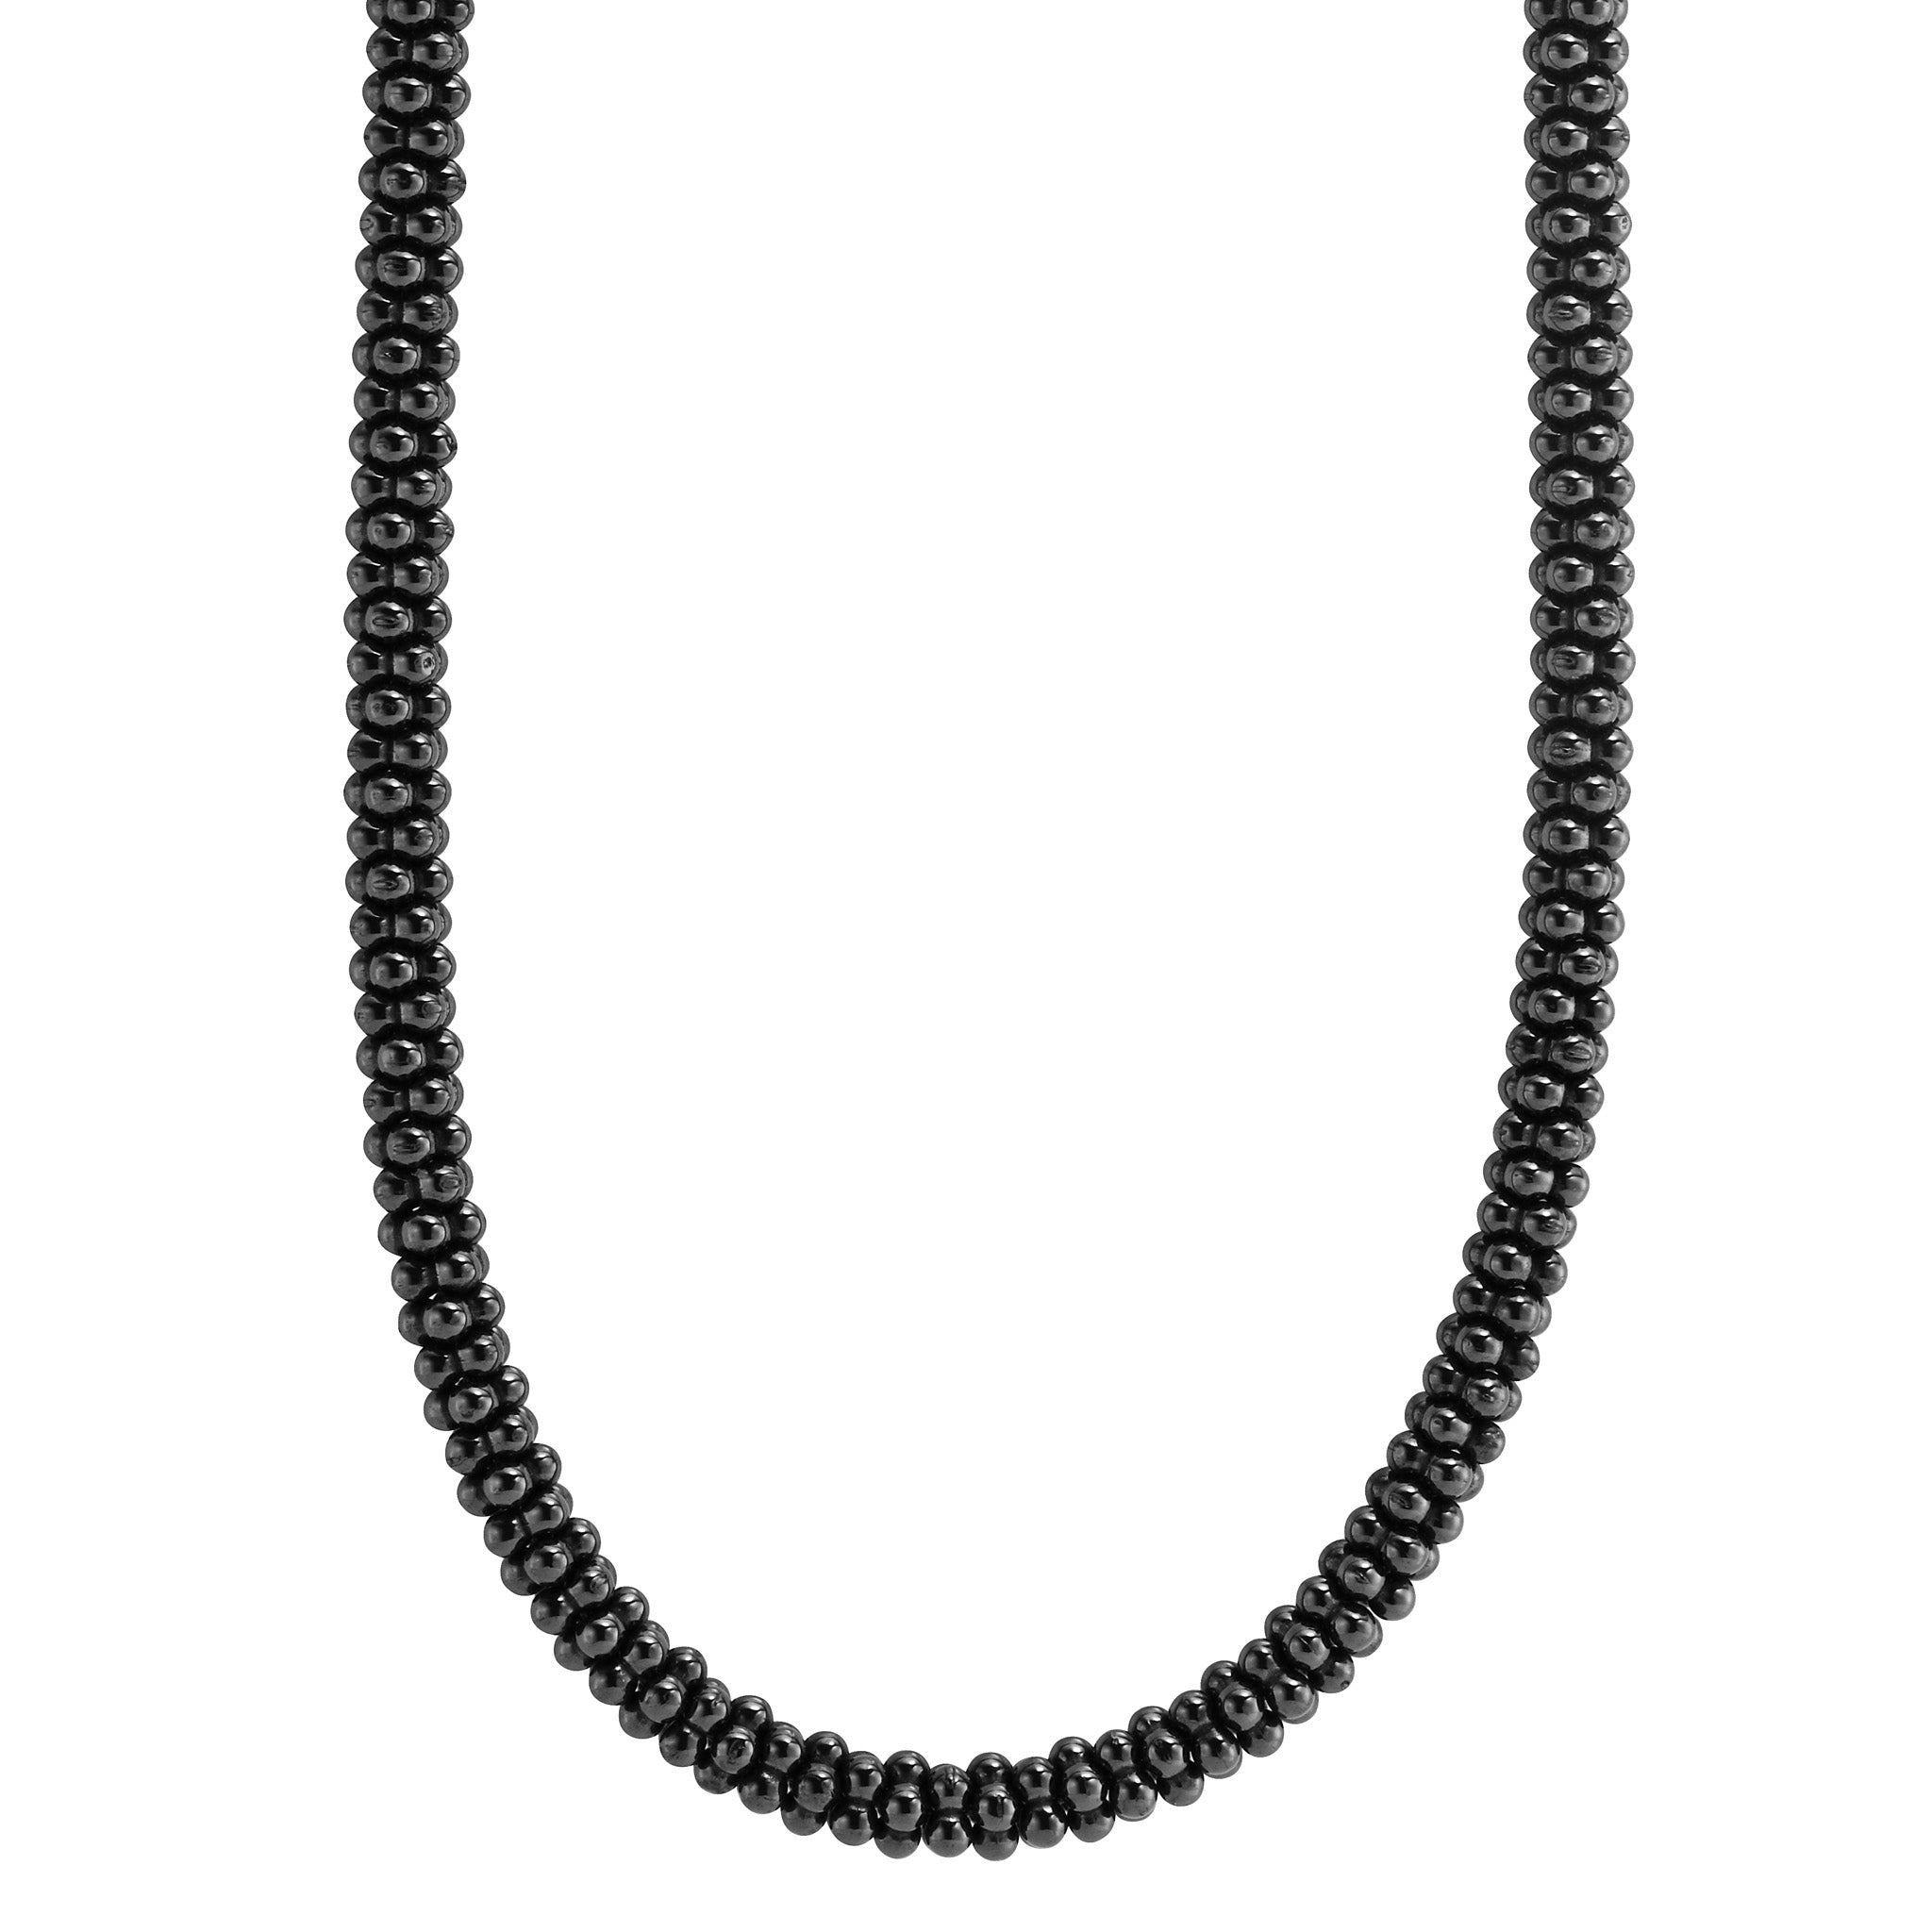 Lagos 'Black Caviar' Beaded Necklace